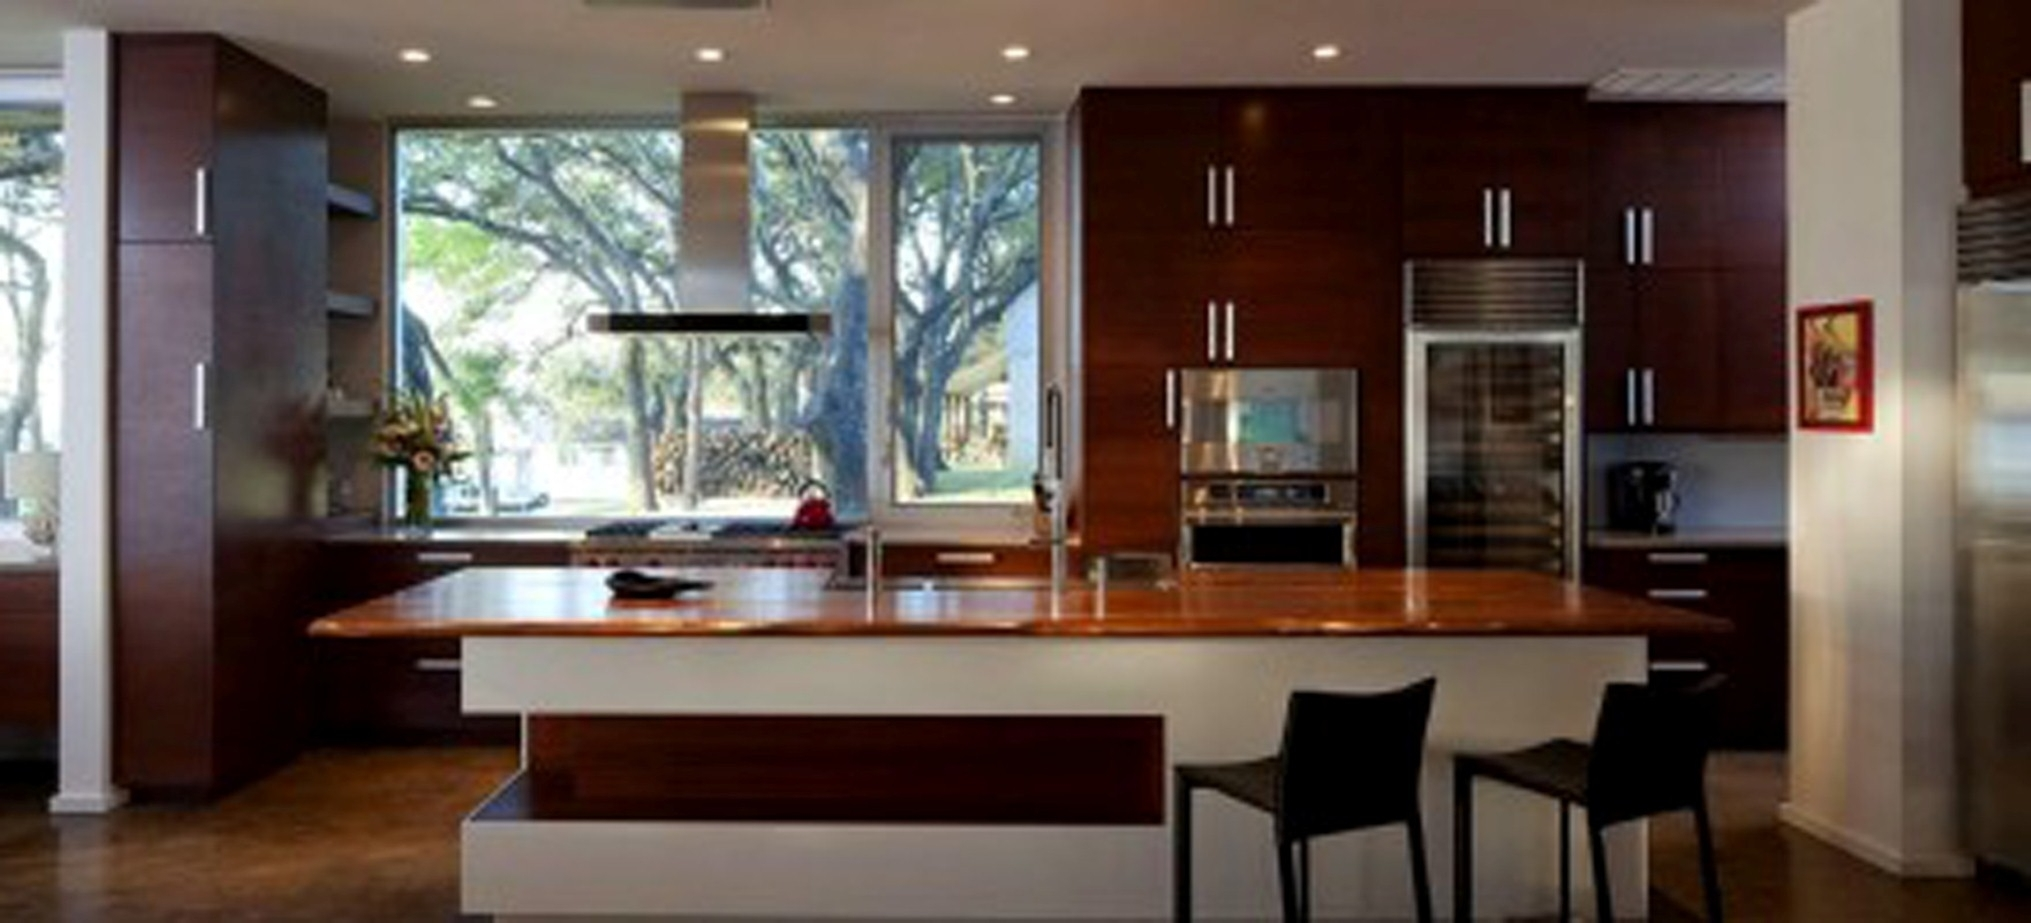 Modern Kitchen Design With Fabulous Wood Countertop Decor Also Handsome Black Seating Design (Image 22 of 31)